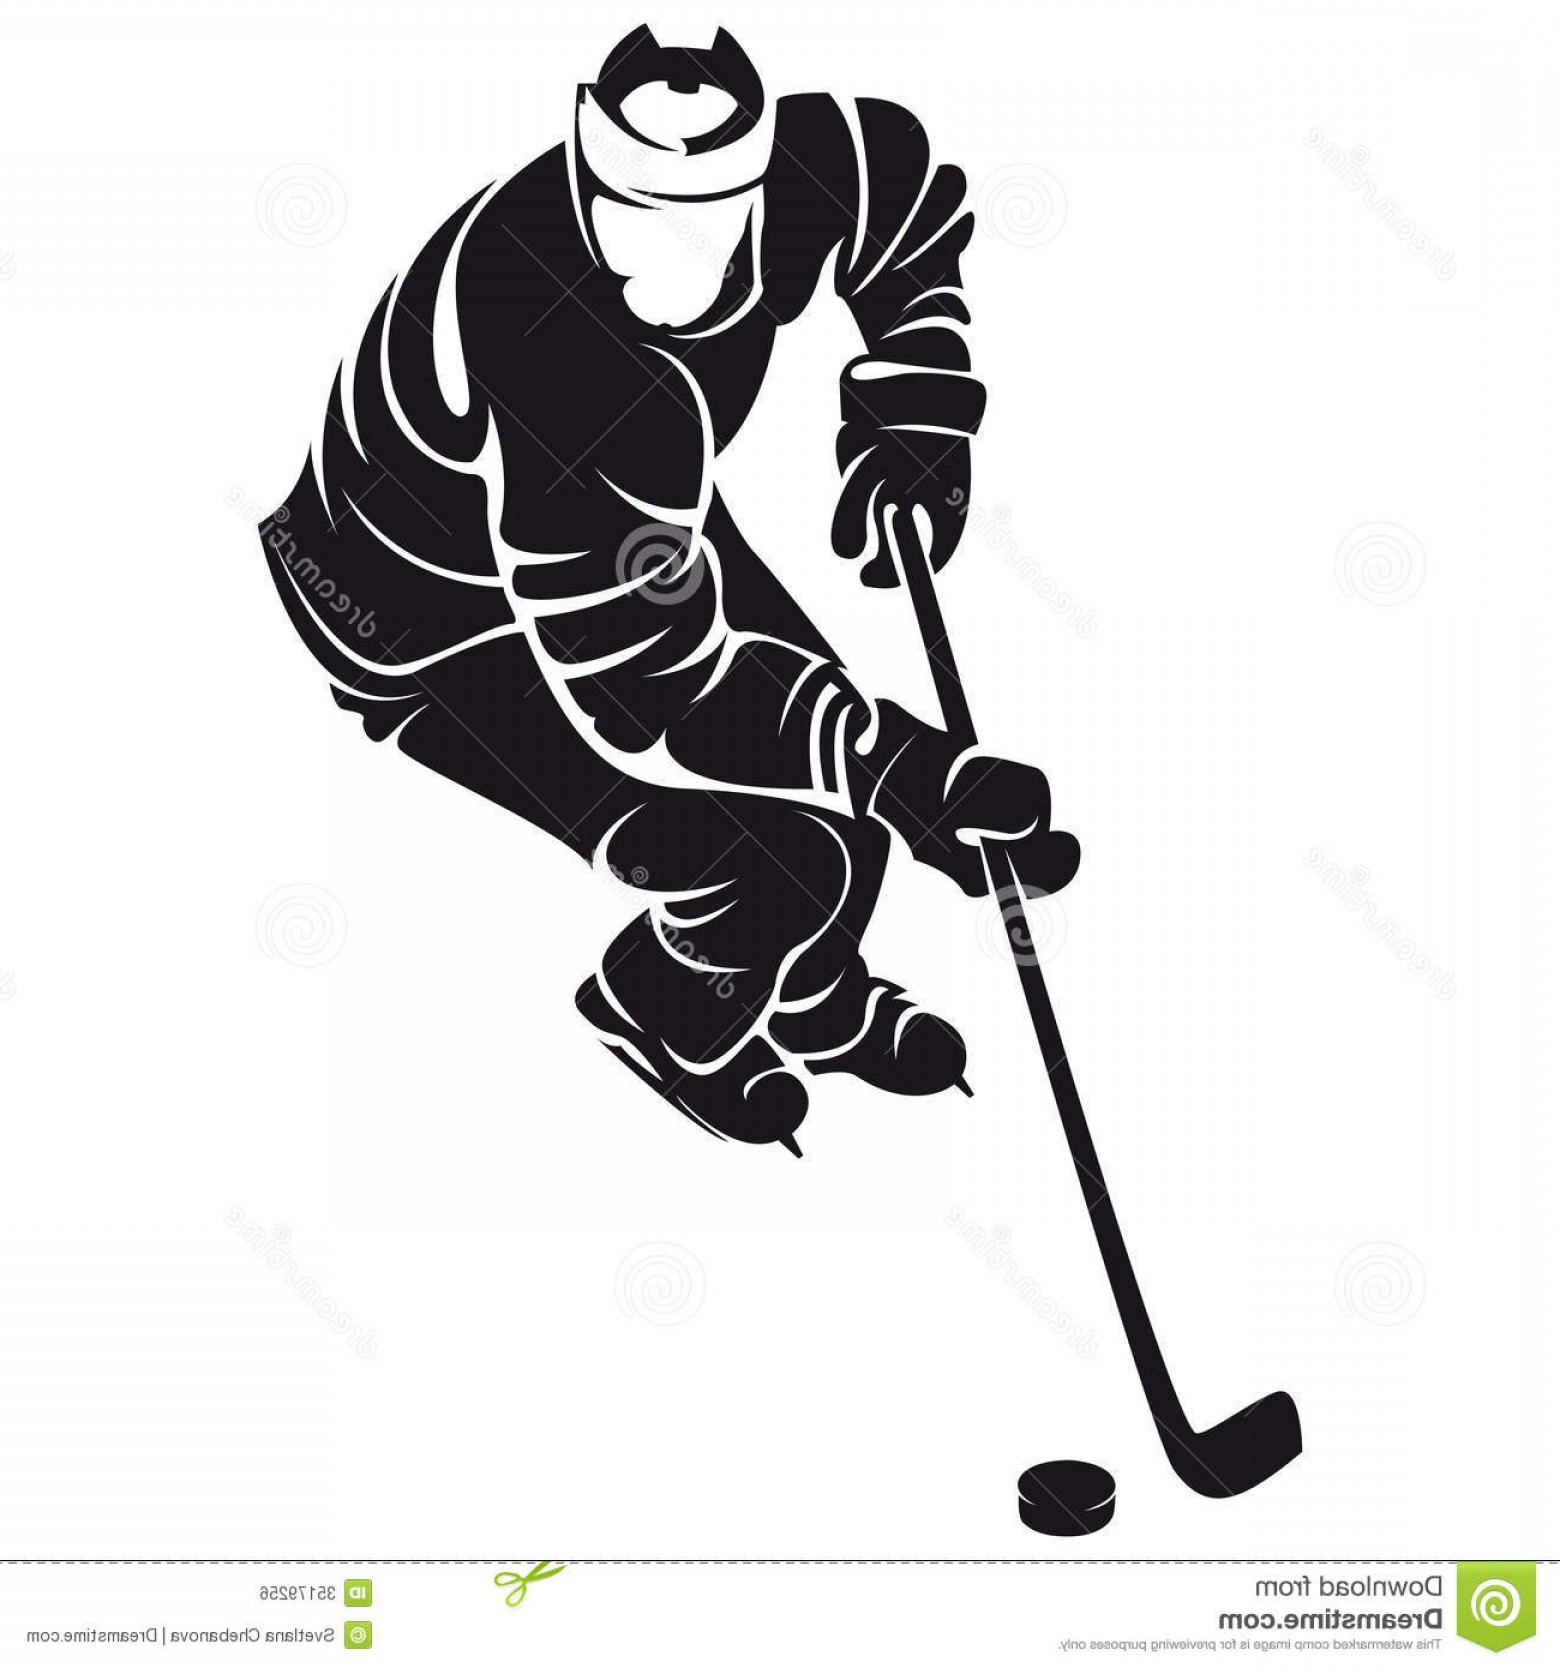 Hockey Player Silhouette Vector: Royalty Free Stock Image Hockey Player Silhouette Isolated White Image